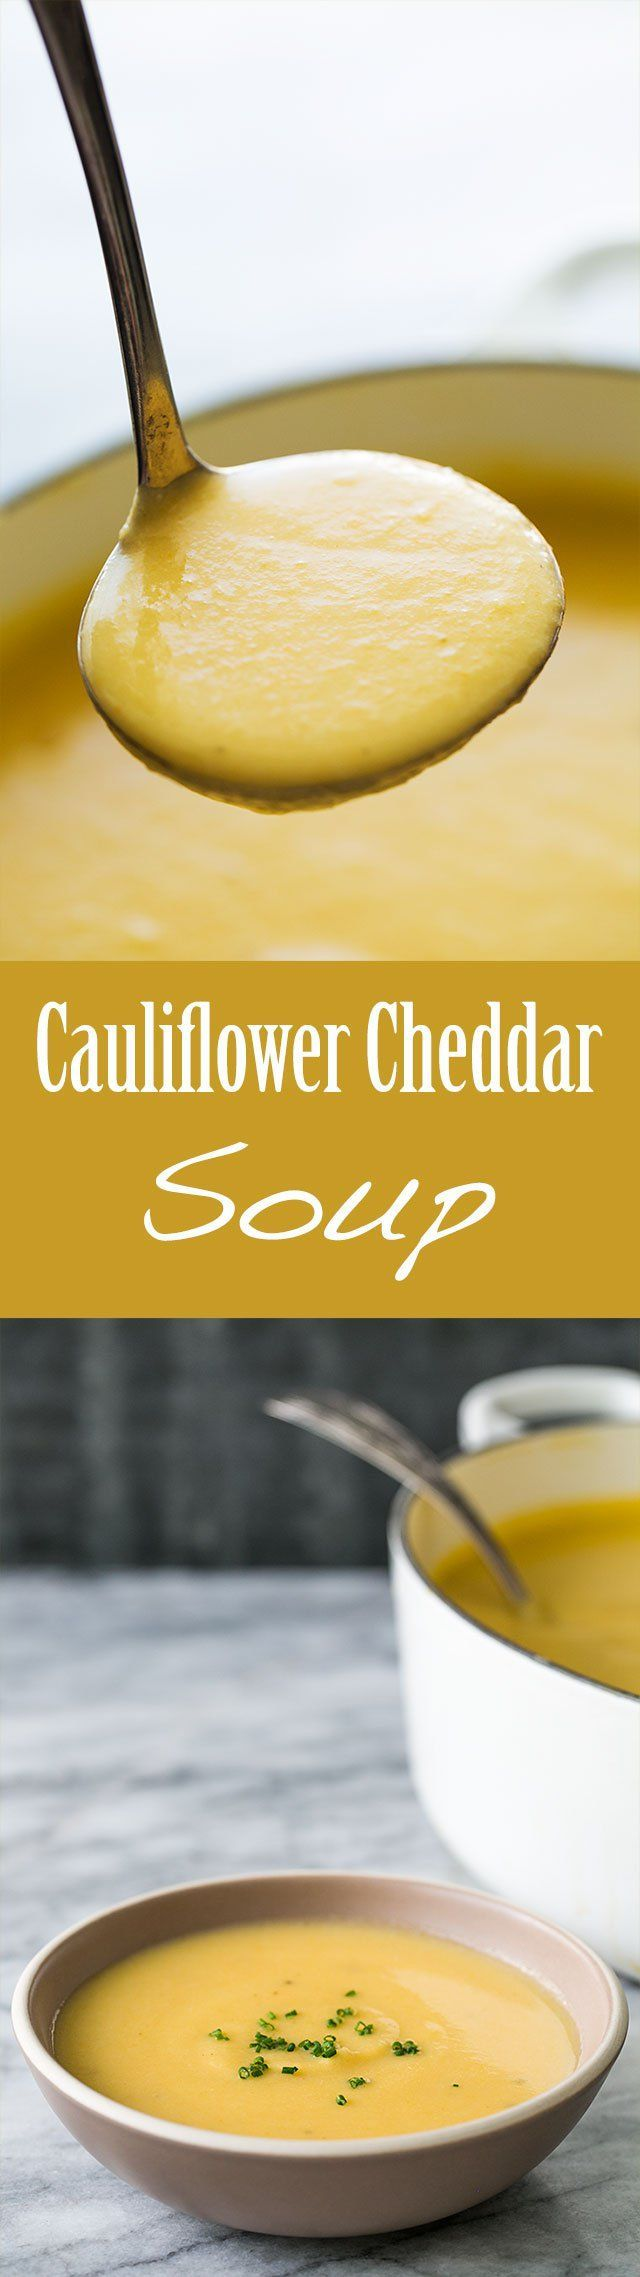 Best soup ever on a chilly day! Delicious, smooth, creamy cauliflower soup with sharp cheddar cheese. This soup will have your guests coming back for seconds! On SimplyRecipes.com